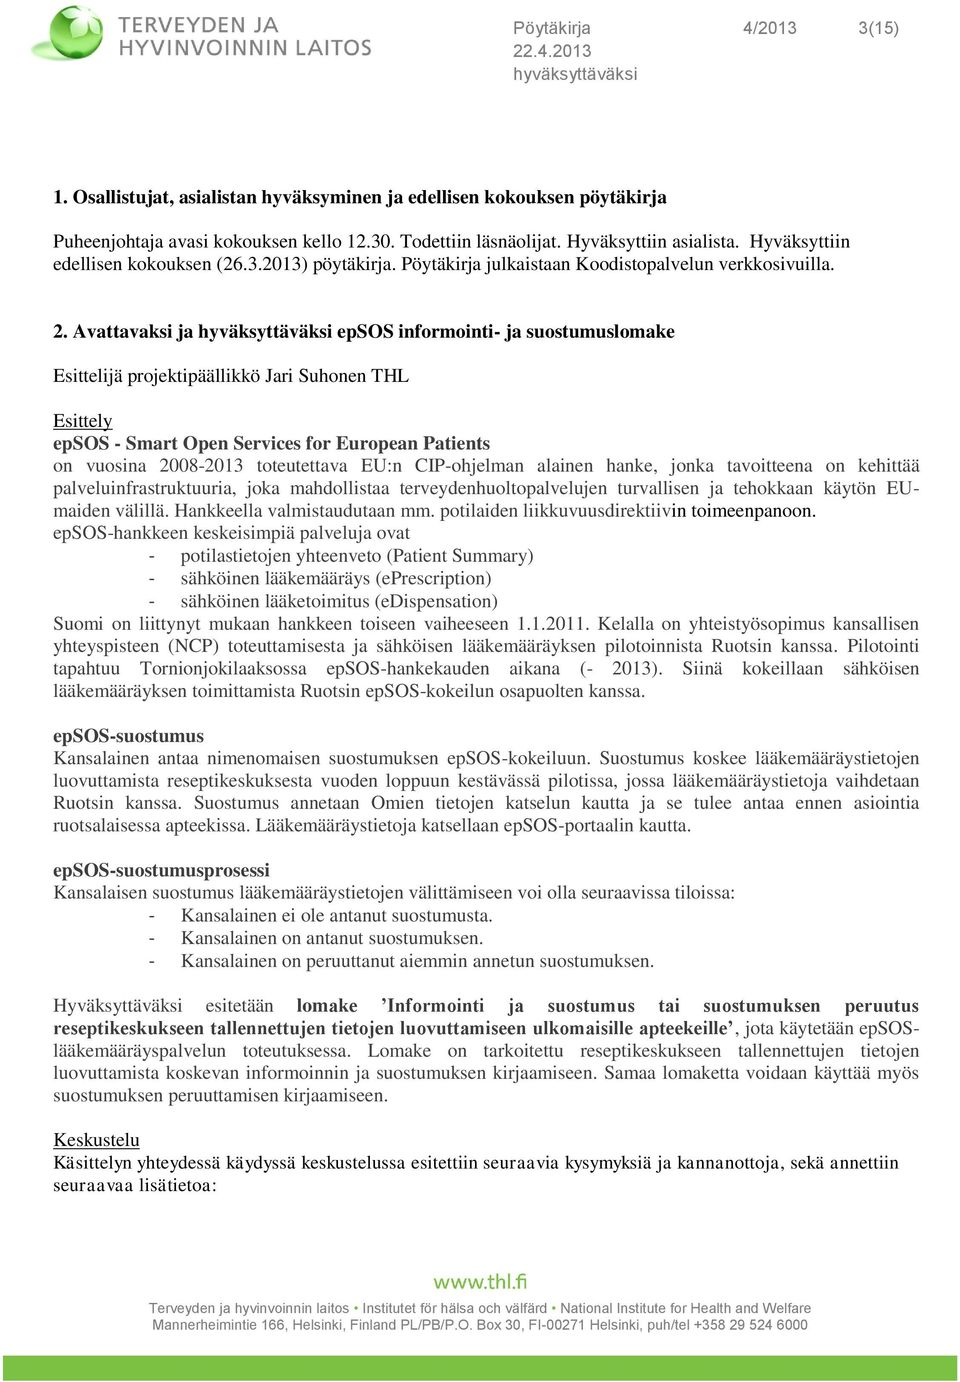 Avattavaksi ja epsos informointi- ja suostumuslomake Esittelijä projektipäällikkö Jari Suhonen THL Esittely epsos - Smart Open Services for European Patients on vuosina 2008-2013 toteutettava EU:n